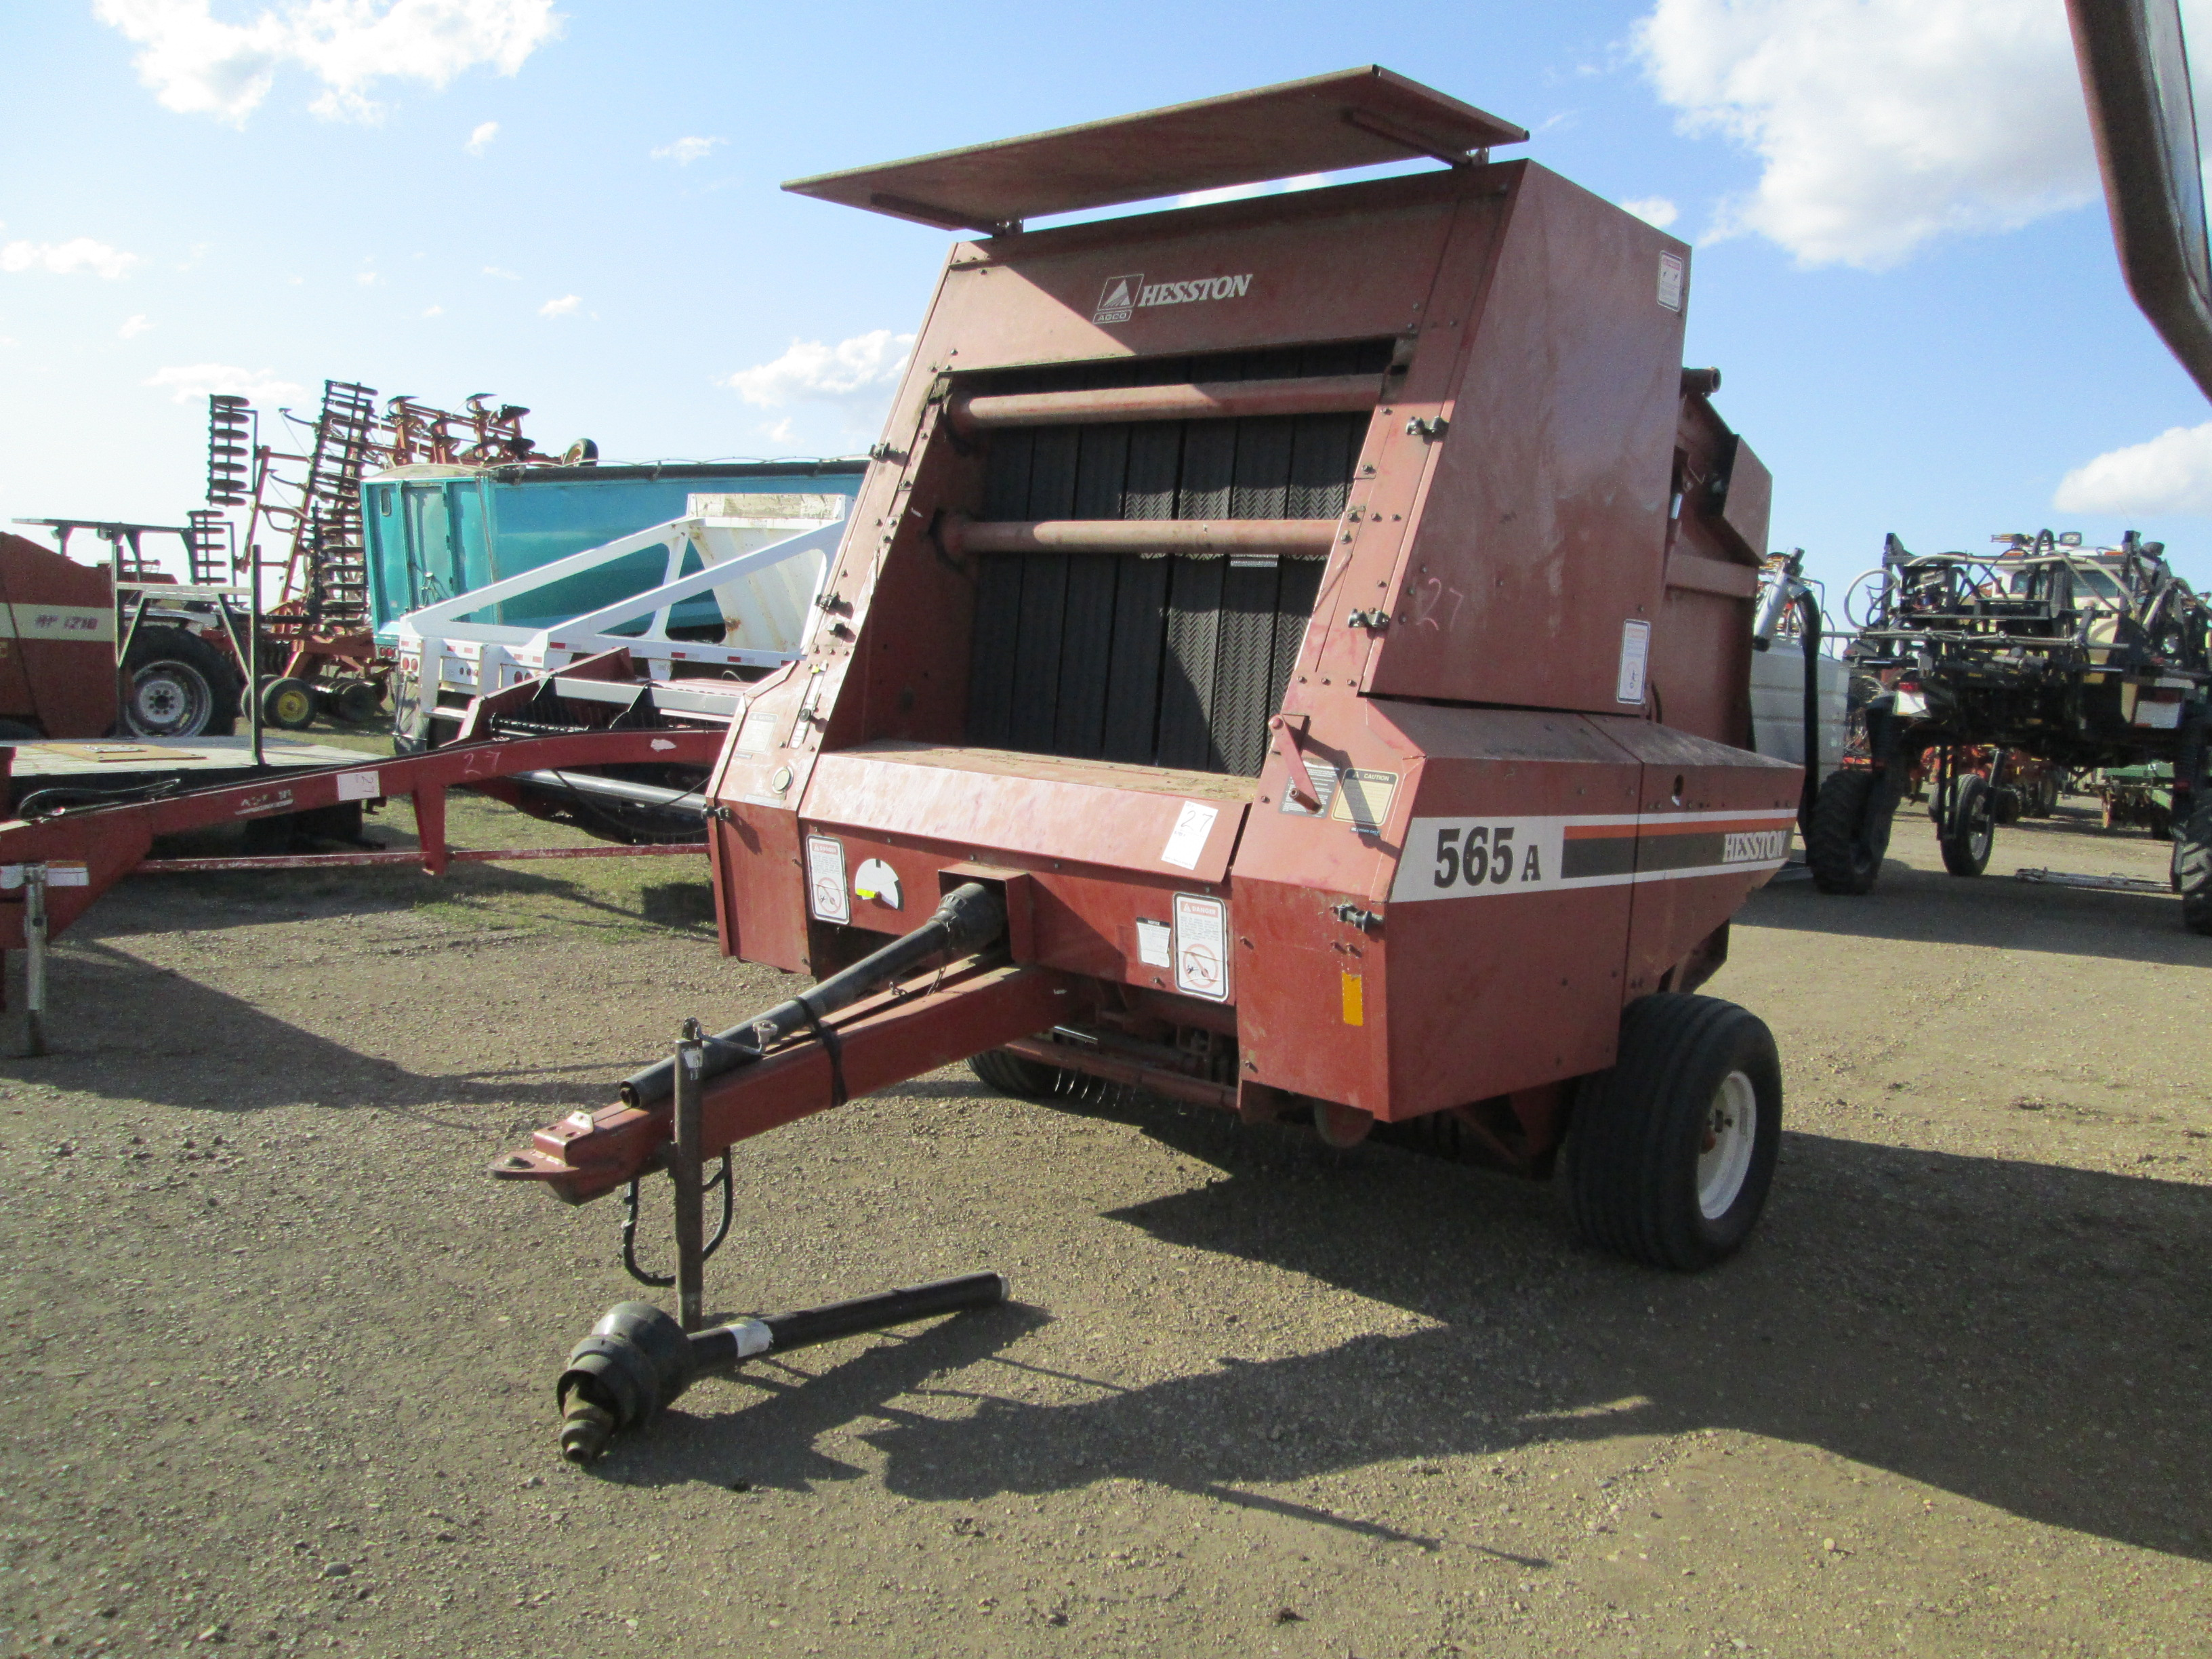 Lot 21 - 1992 HESSTON 565A ROUND BALER, CONTROLS & MANUAL IN OFFICE- Lot